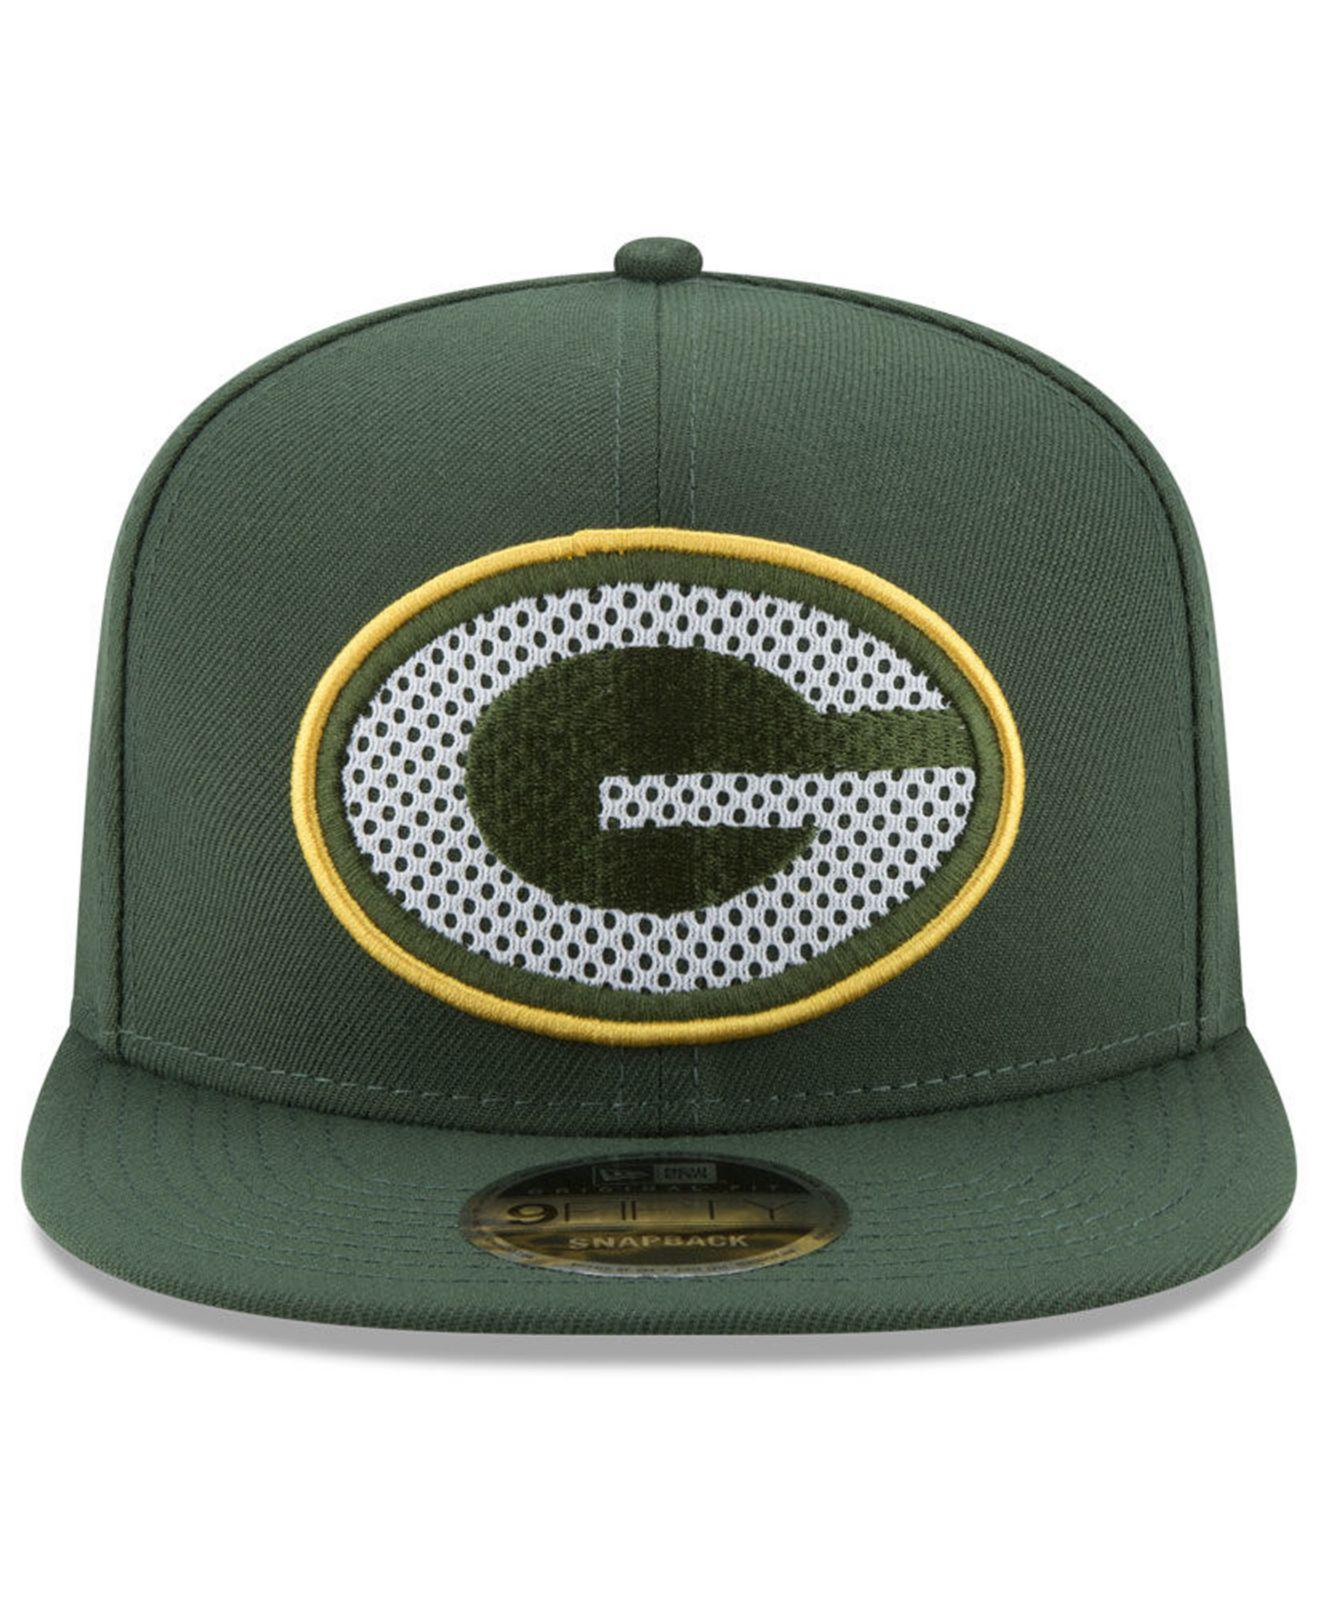 7885d845c Lyst - Ktz Green Bay Packers Meshed Mix 9fifty Snapback Cap in Green for Men